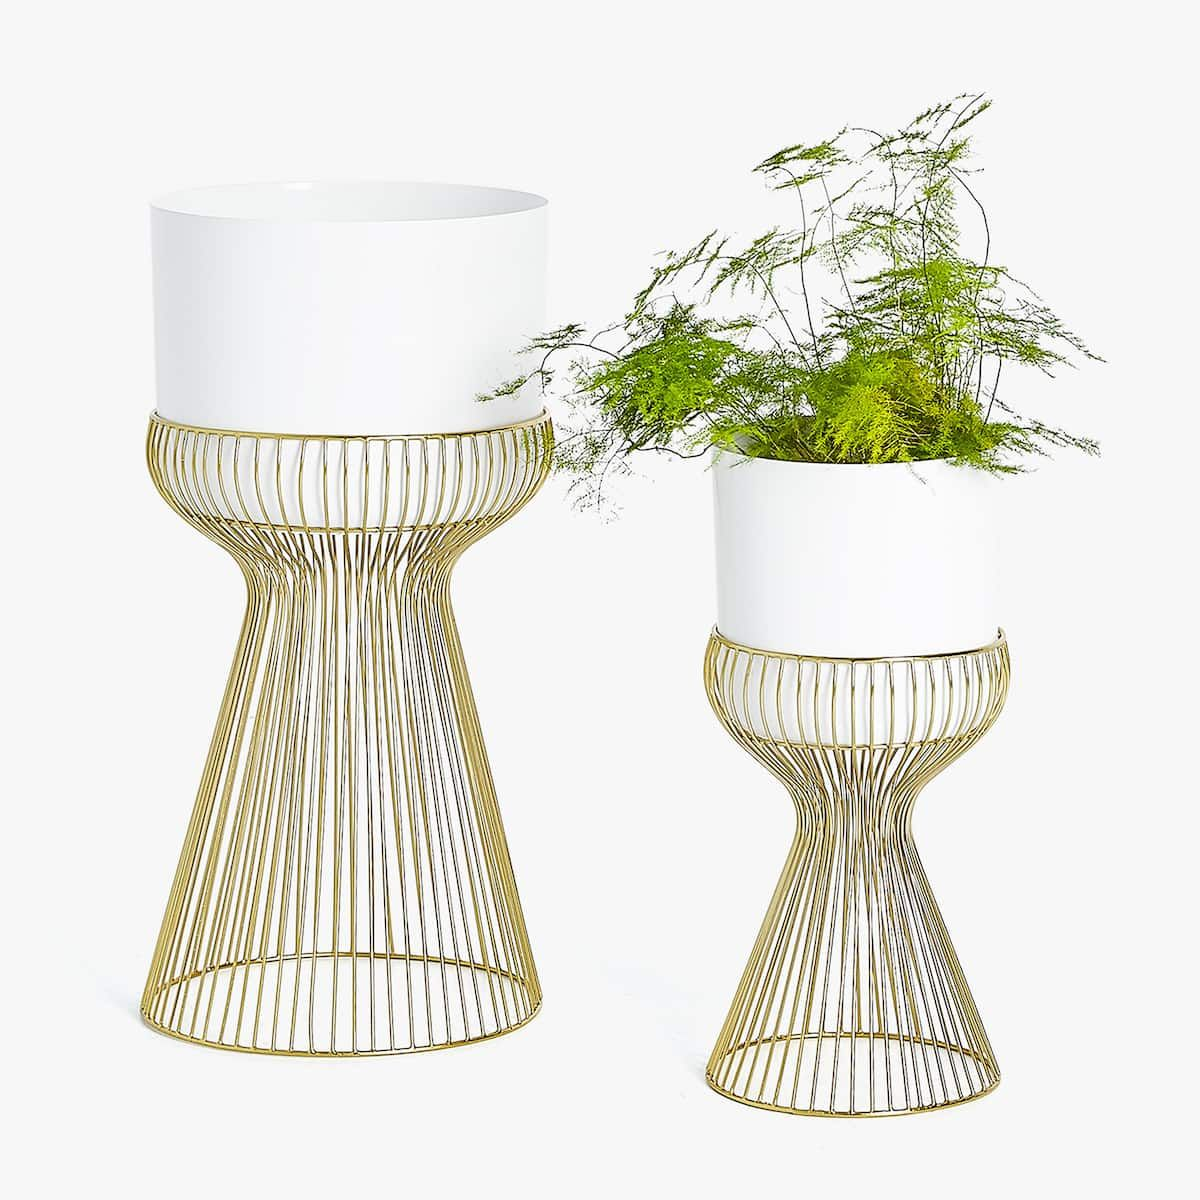 Image 6 of the product GOLDEN RIM PLANTER WITH WHITE POT